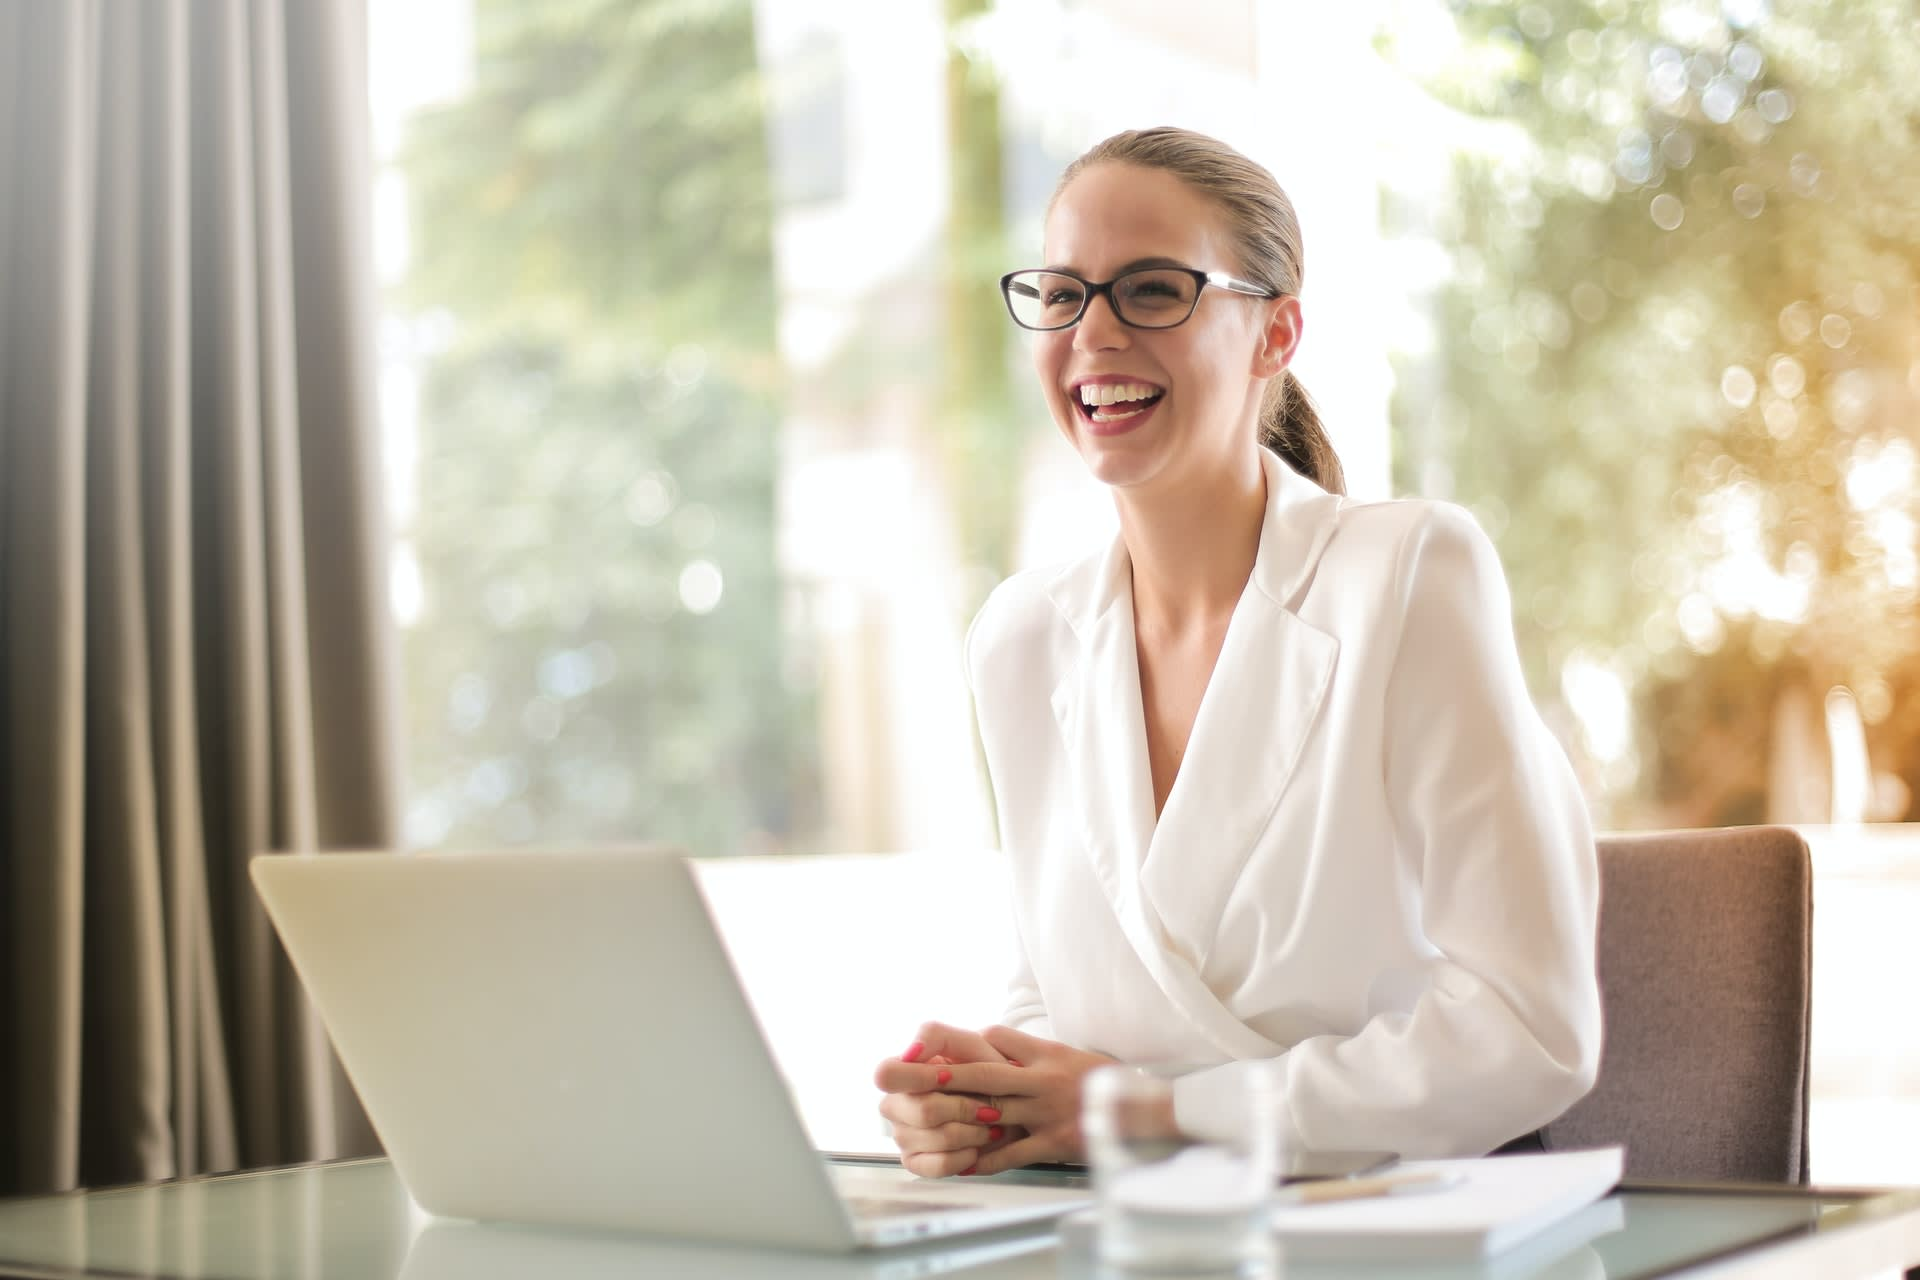 How to attract more women to the profession